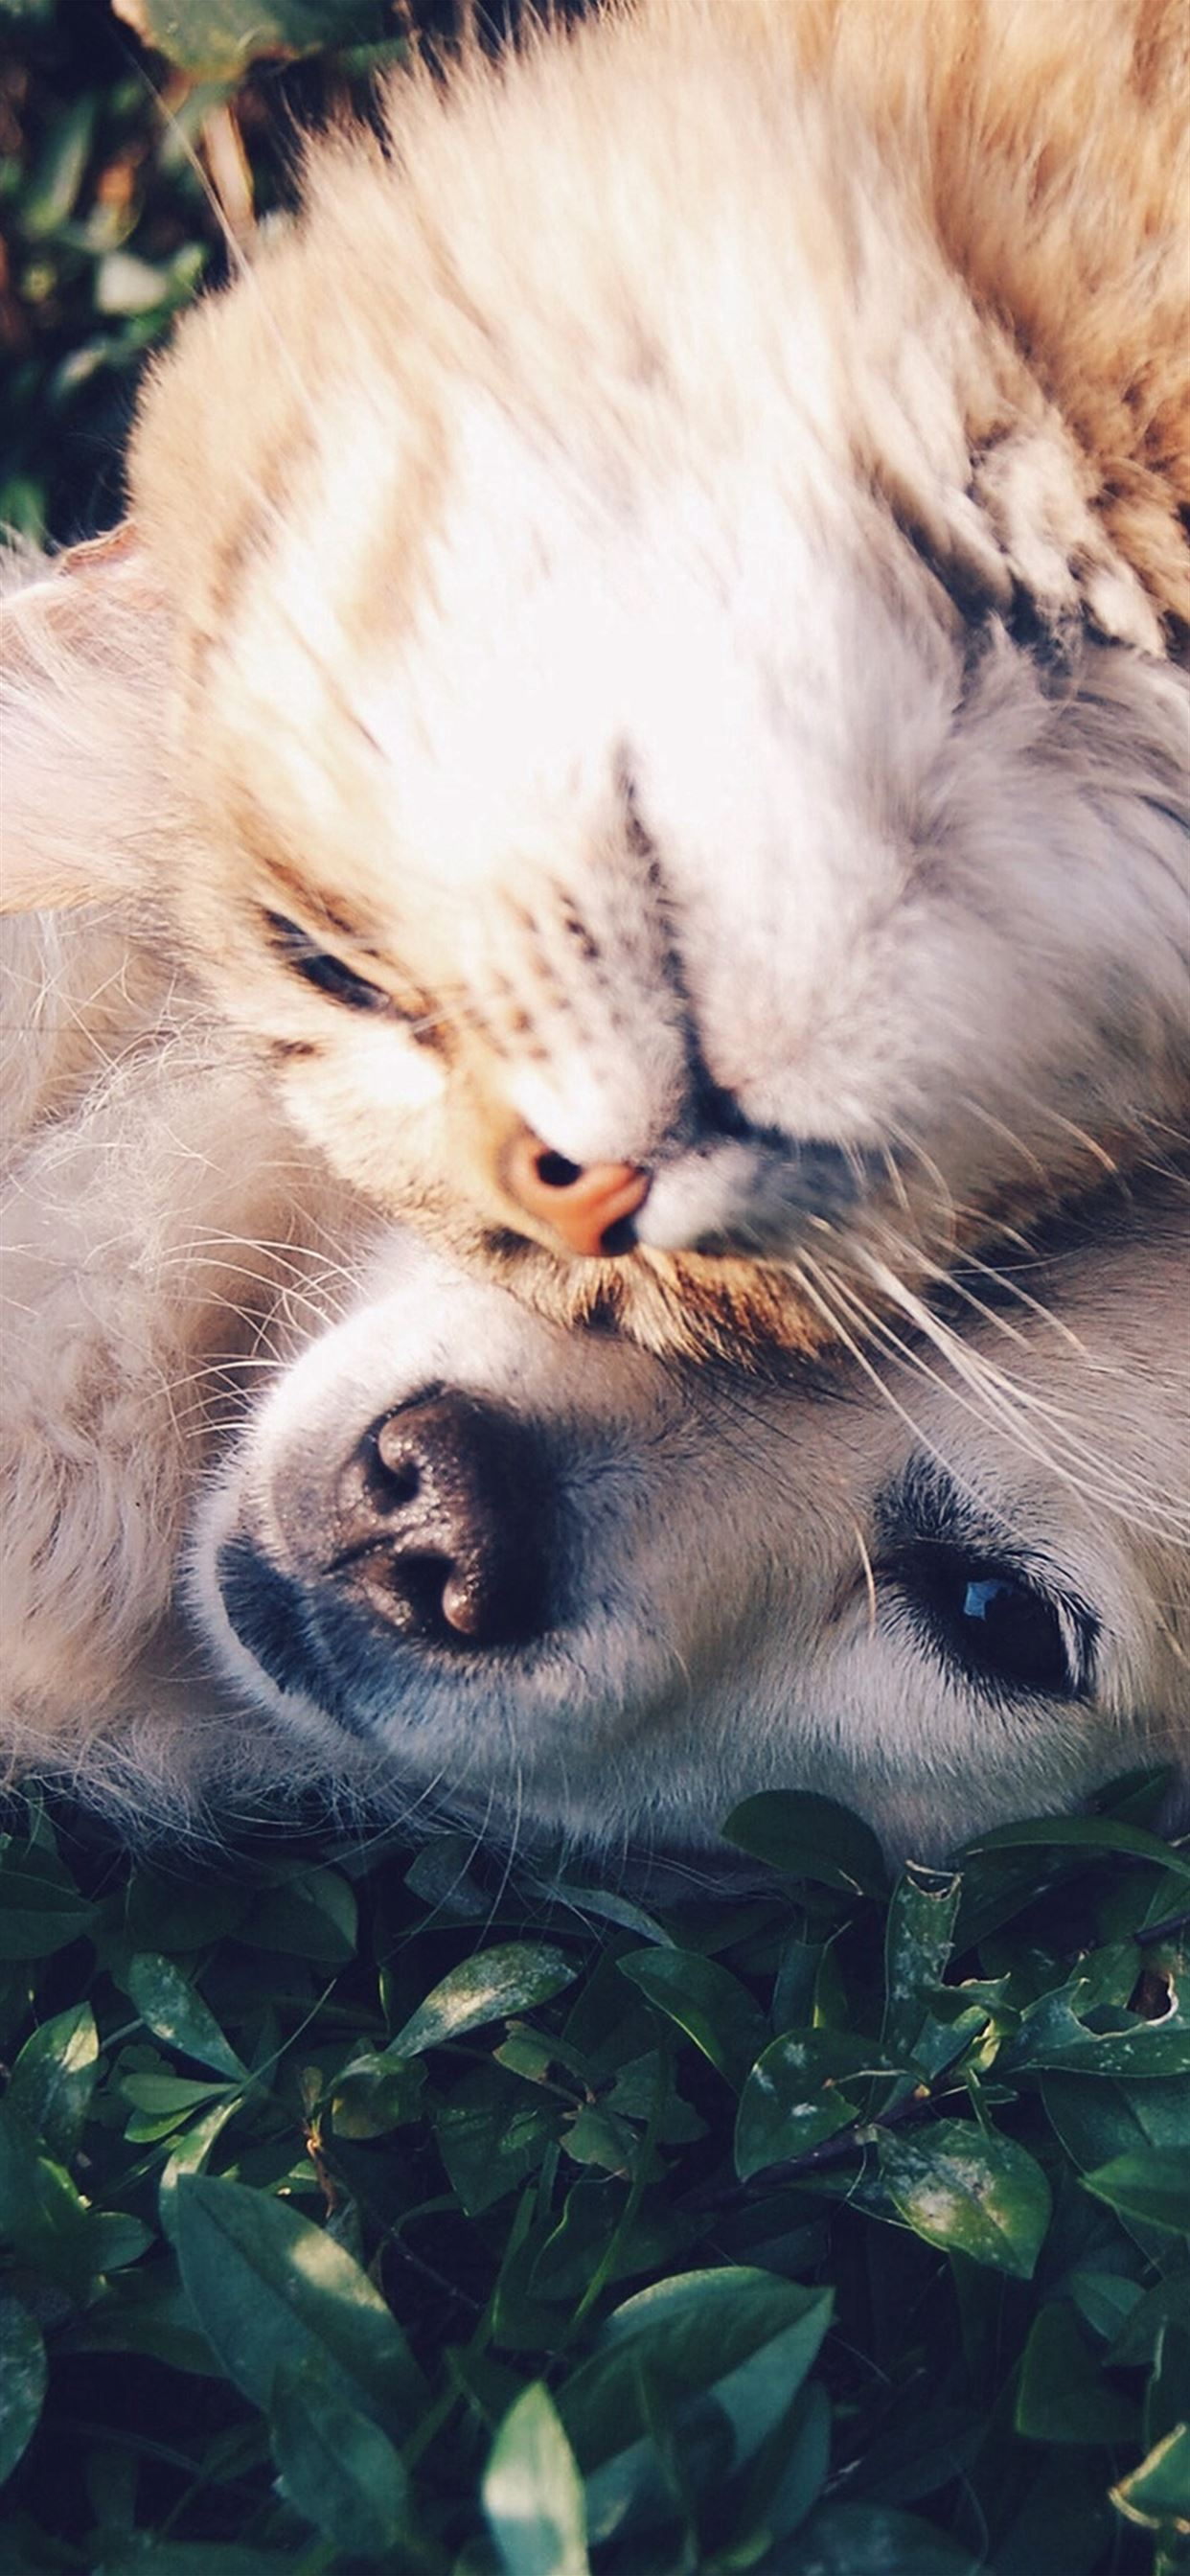 Cat And Dog Animal Love Nature Pure Iphone 11 Wallpapers Free Download